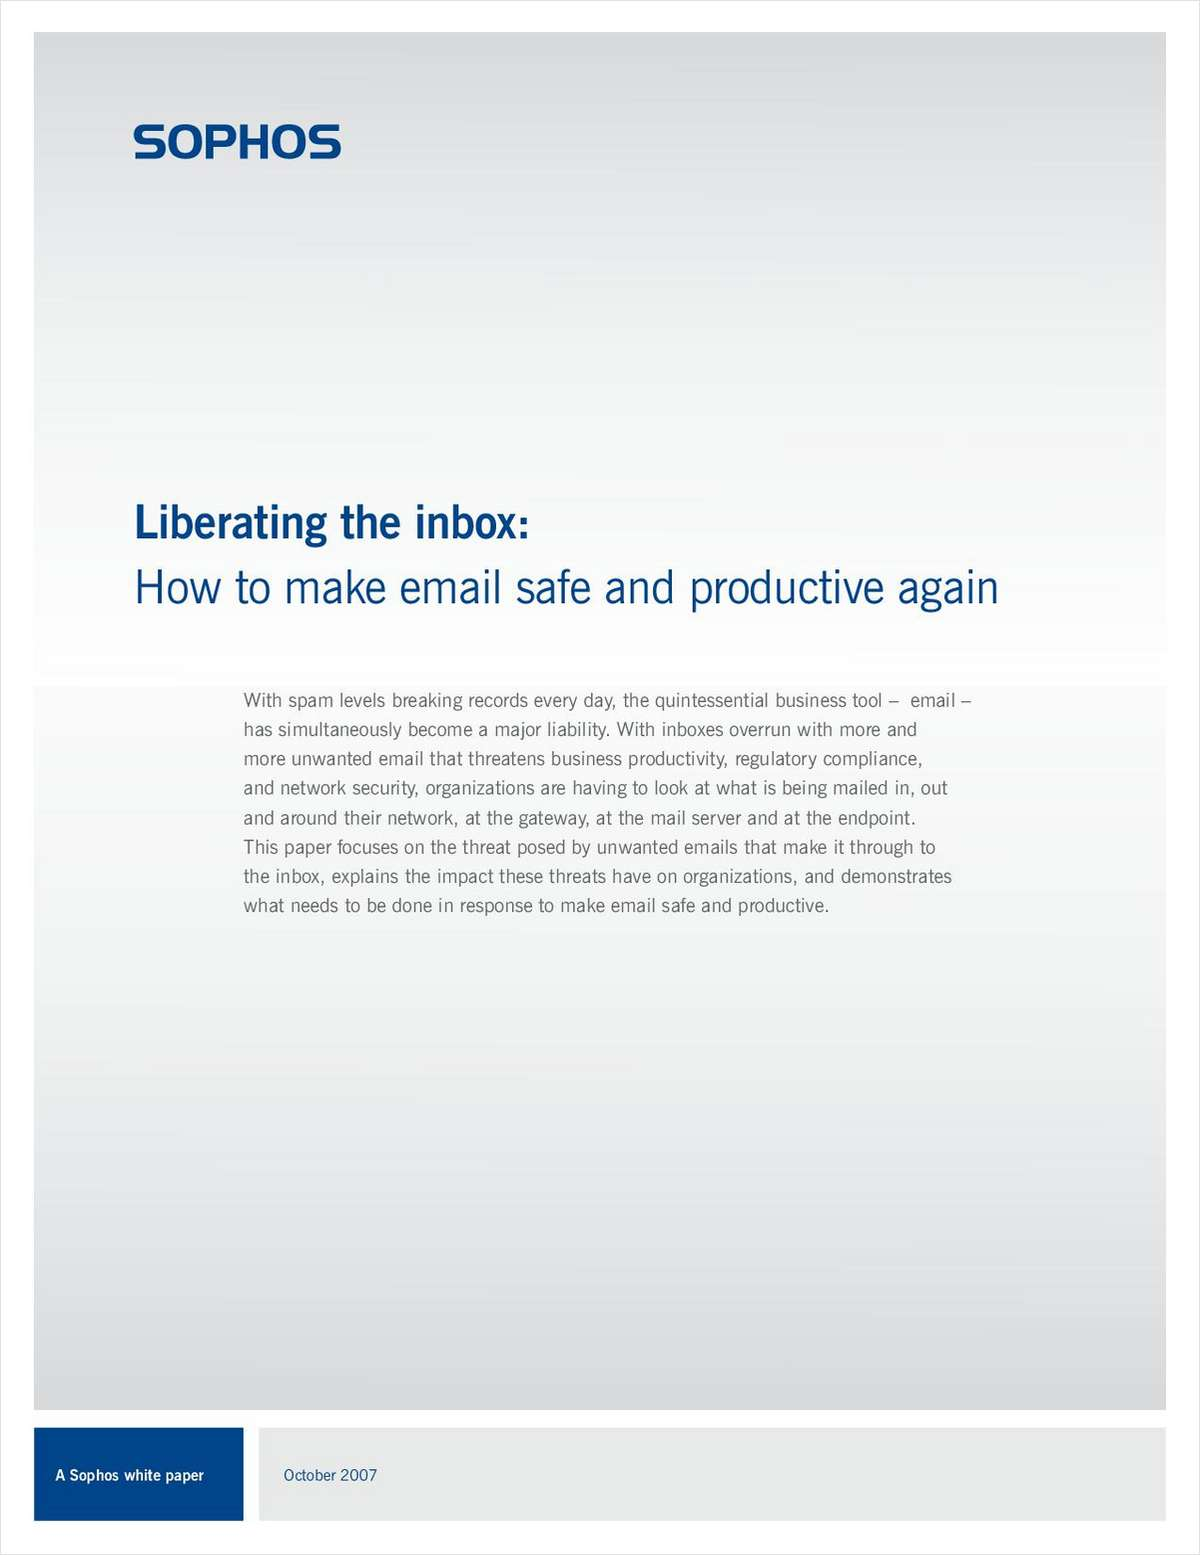 Liberating the Inbox: How to Make Email Safe and Productive Again